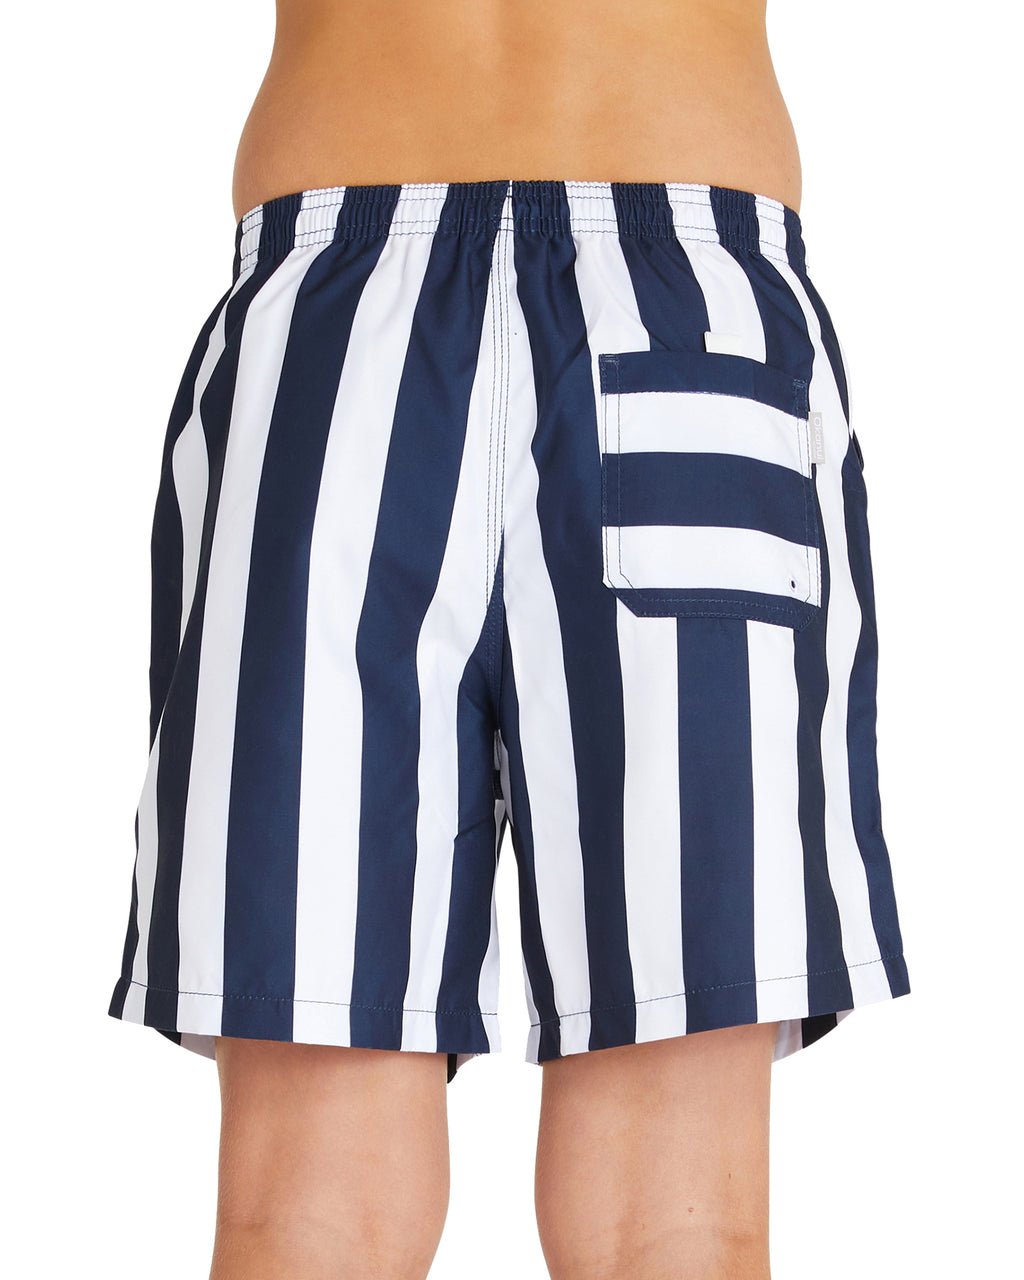 Kids Swim Short - Classic Stripe - Navy